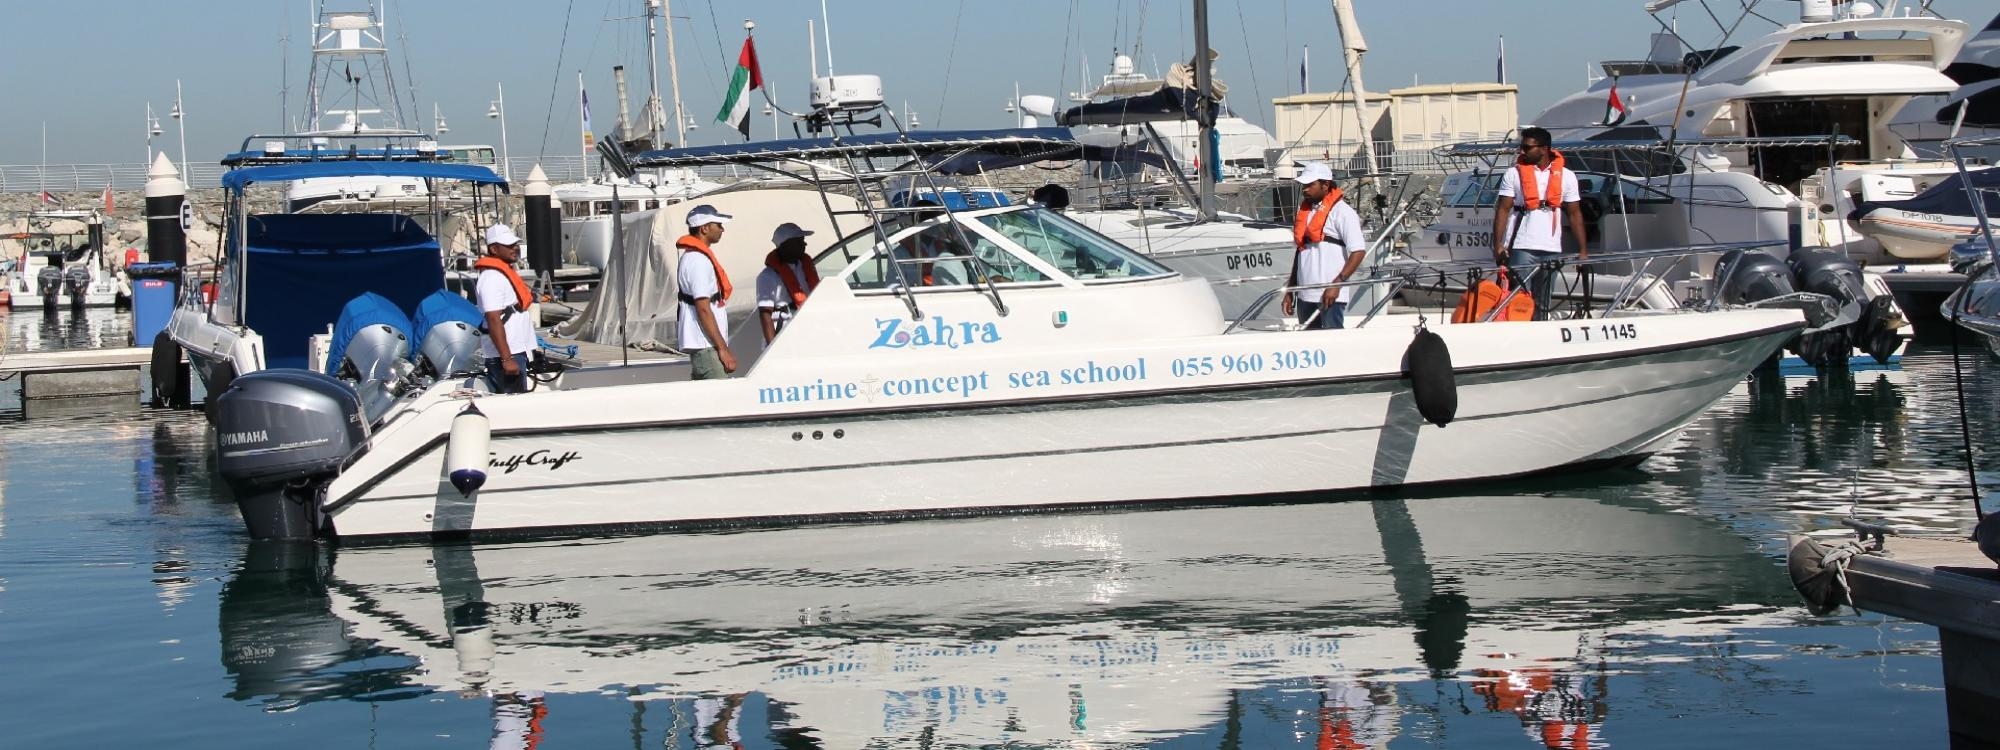 Fta Small Boat Driving Course 12 Meter In U A E Marine